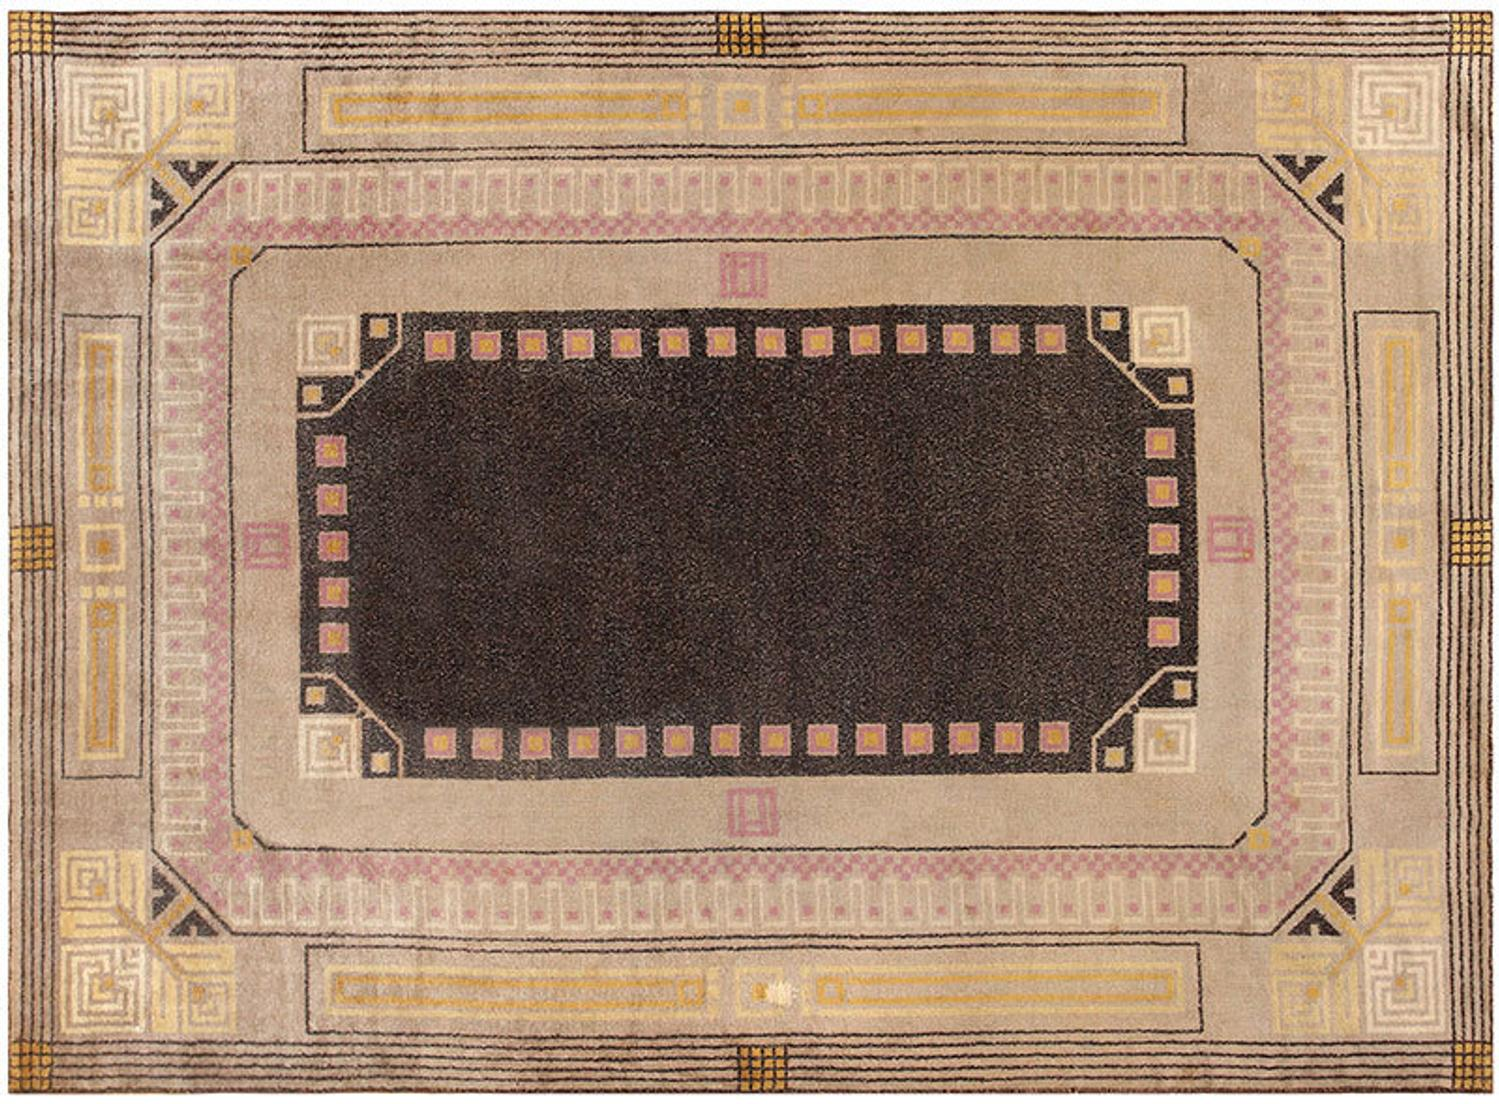 art deco rug. Nazmiyal Acquires Art Deco Carpet By Famed Designer Josef Hoffmann - Collection Blog From ArtfixDaily.com Rug